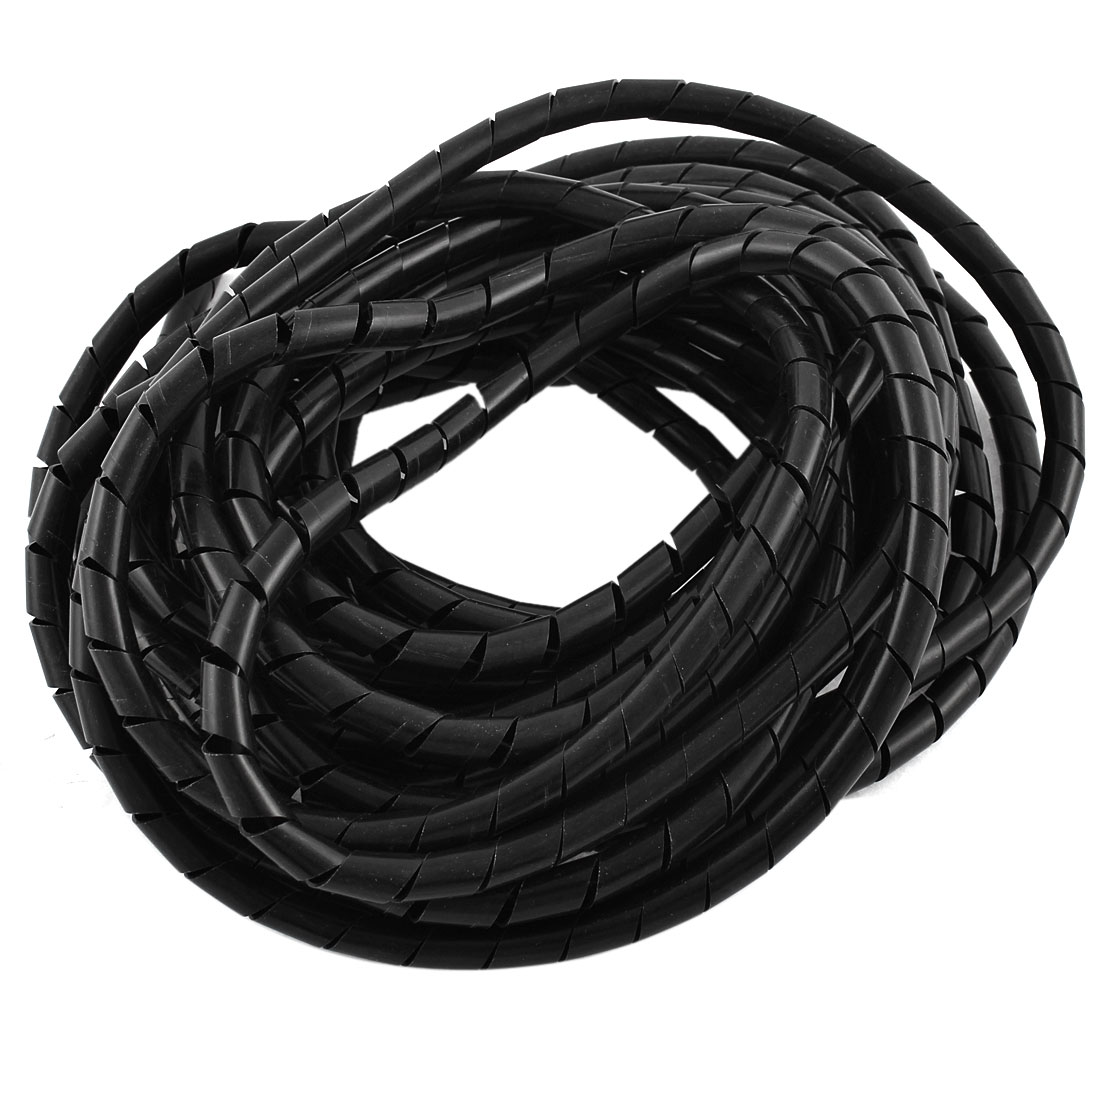 Polyethylene Black Spiral Wrapping Band Cable Wire Manager 8mm Dia 8M Long